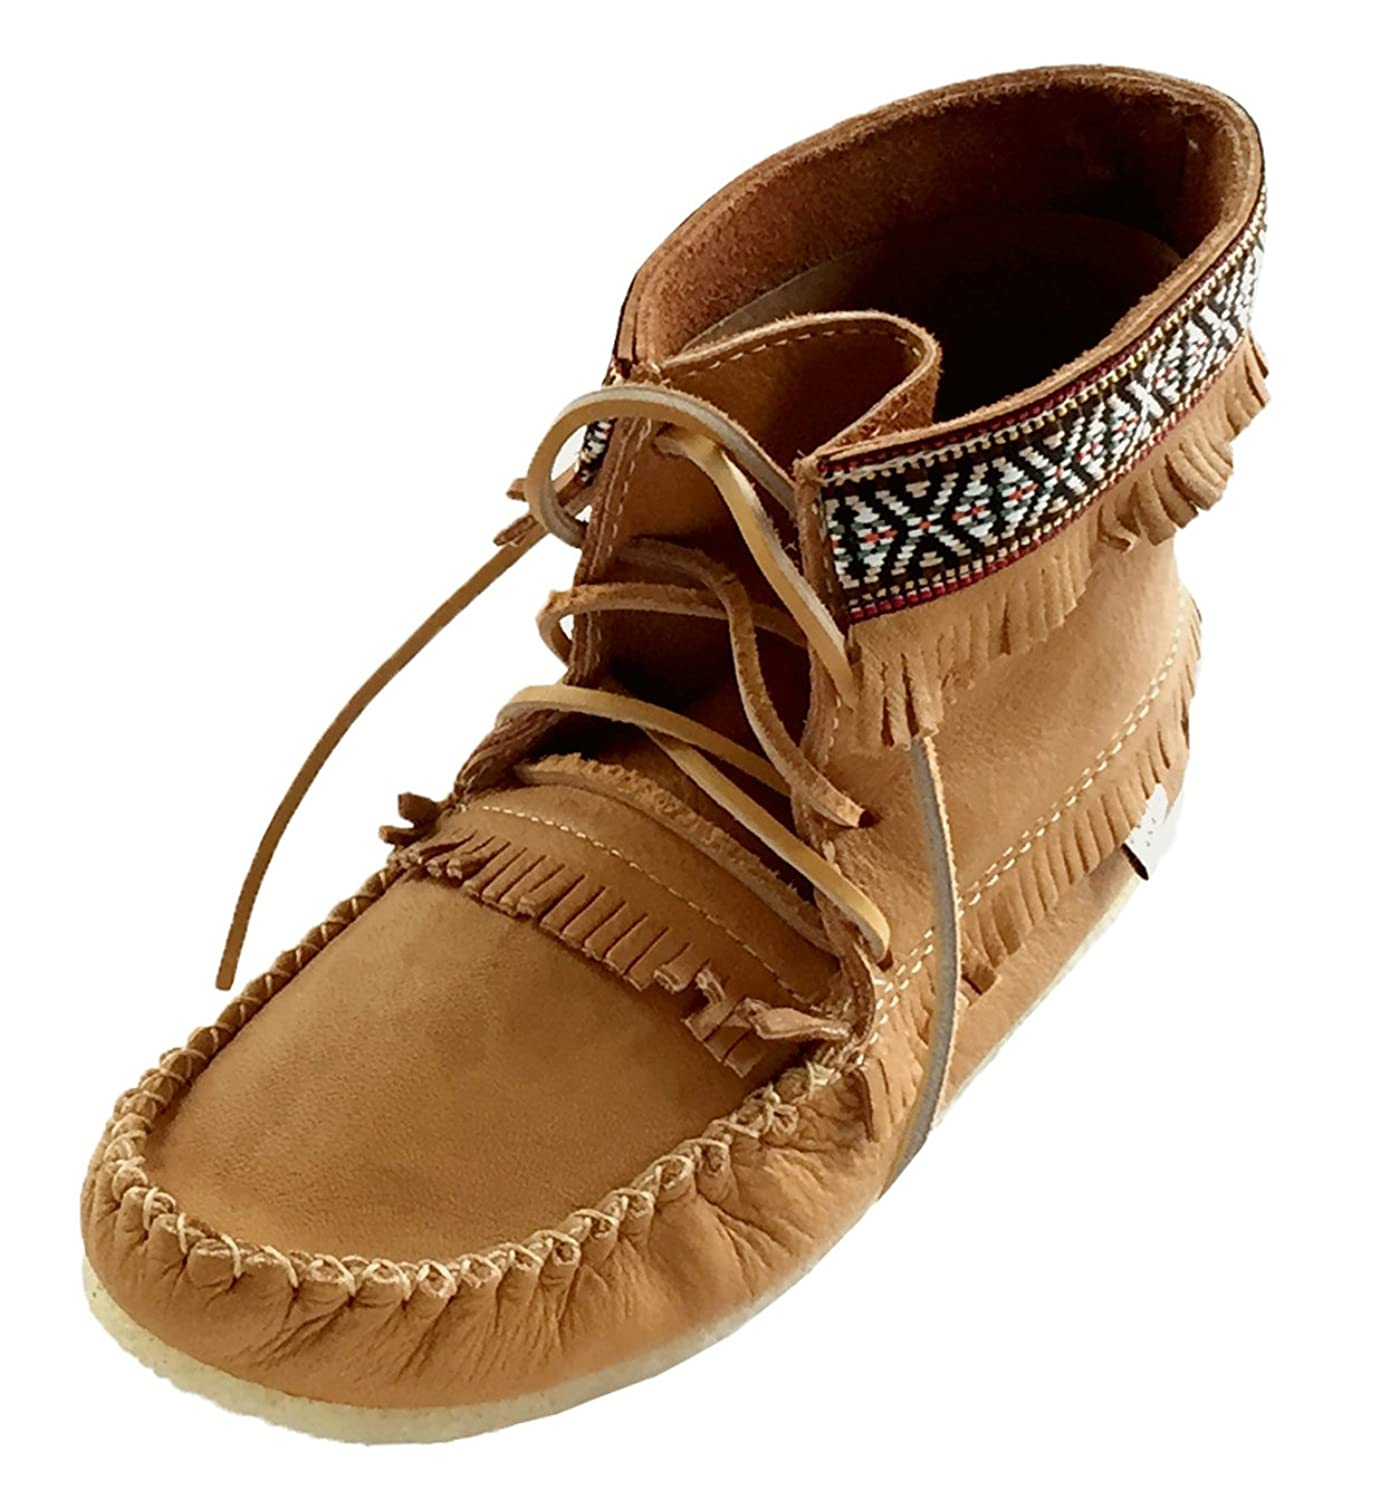 Men's Brown Fringe & Braid Apache Moccasin Boots